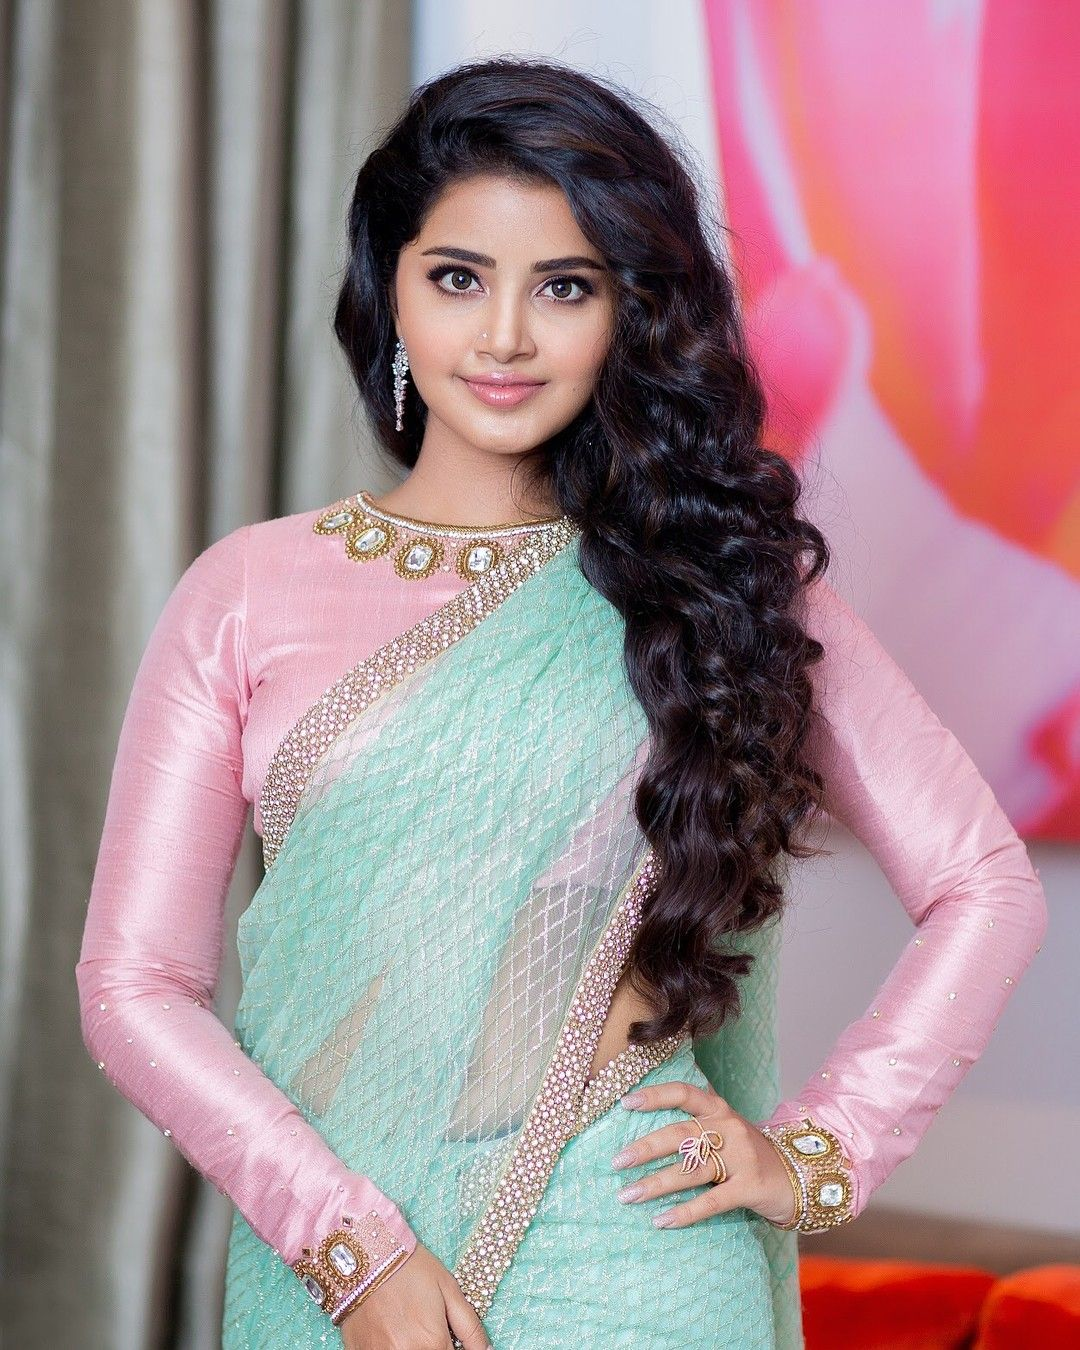 Anupama Parameshwaran | Indian beauties | Pinterest | Saree, Indian ...